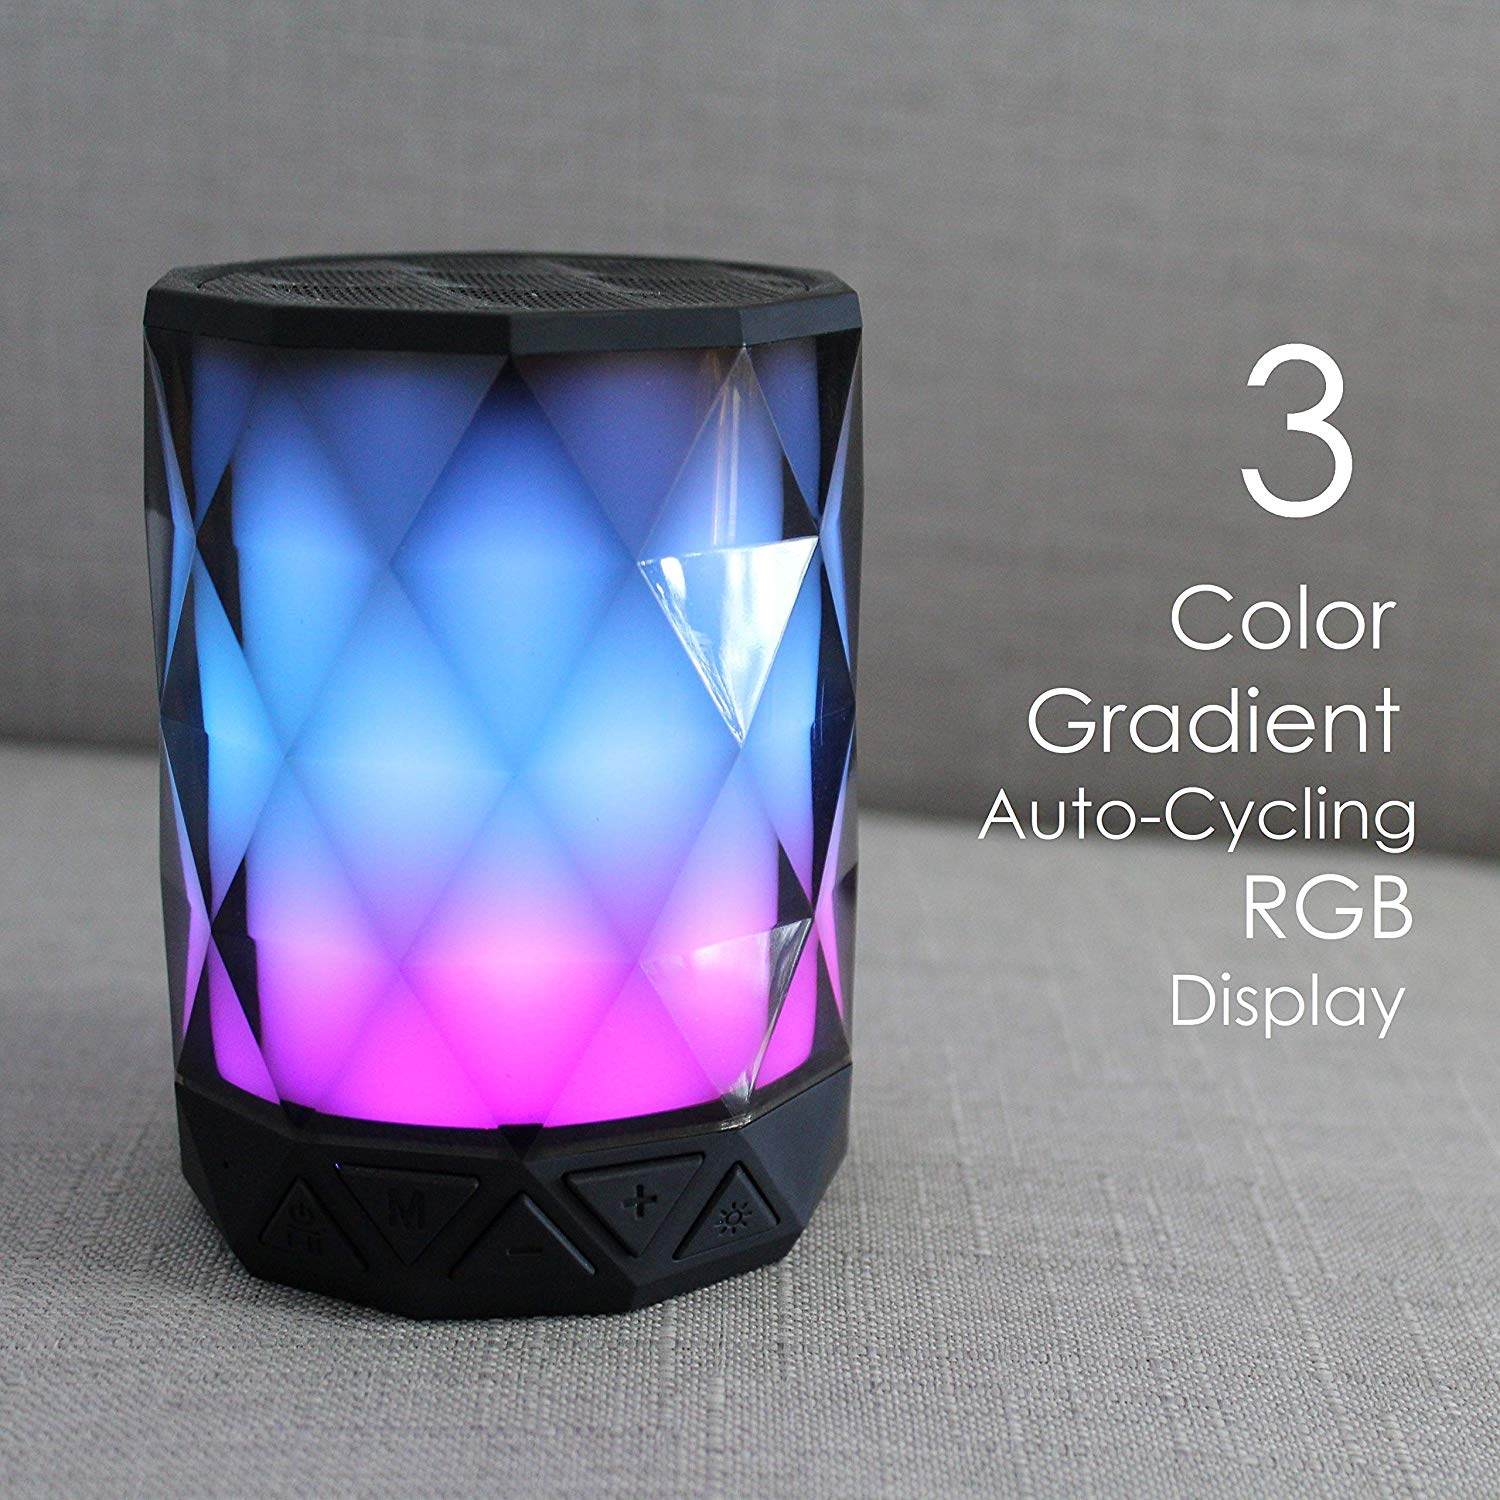 Portable Bluetooth Speaker with lights – $8 on Amazon! 60% off